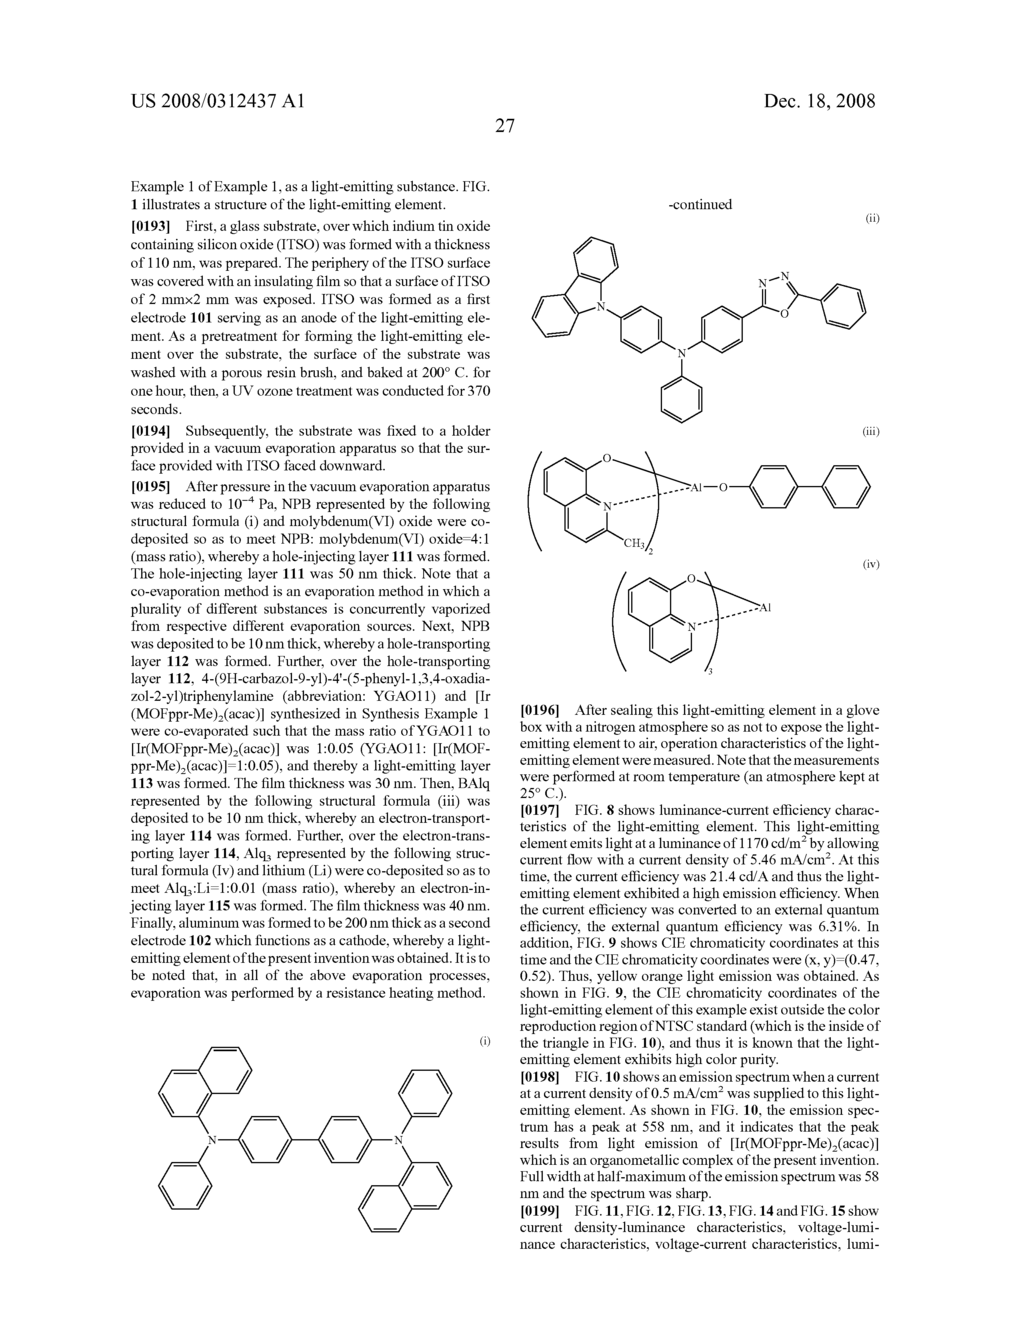 Organometallic Complex, and Light-Emitting Element, Light-Emitting Device, and Electronic Device Using the Organometallic Complex - diagram, schematic, and image 44